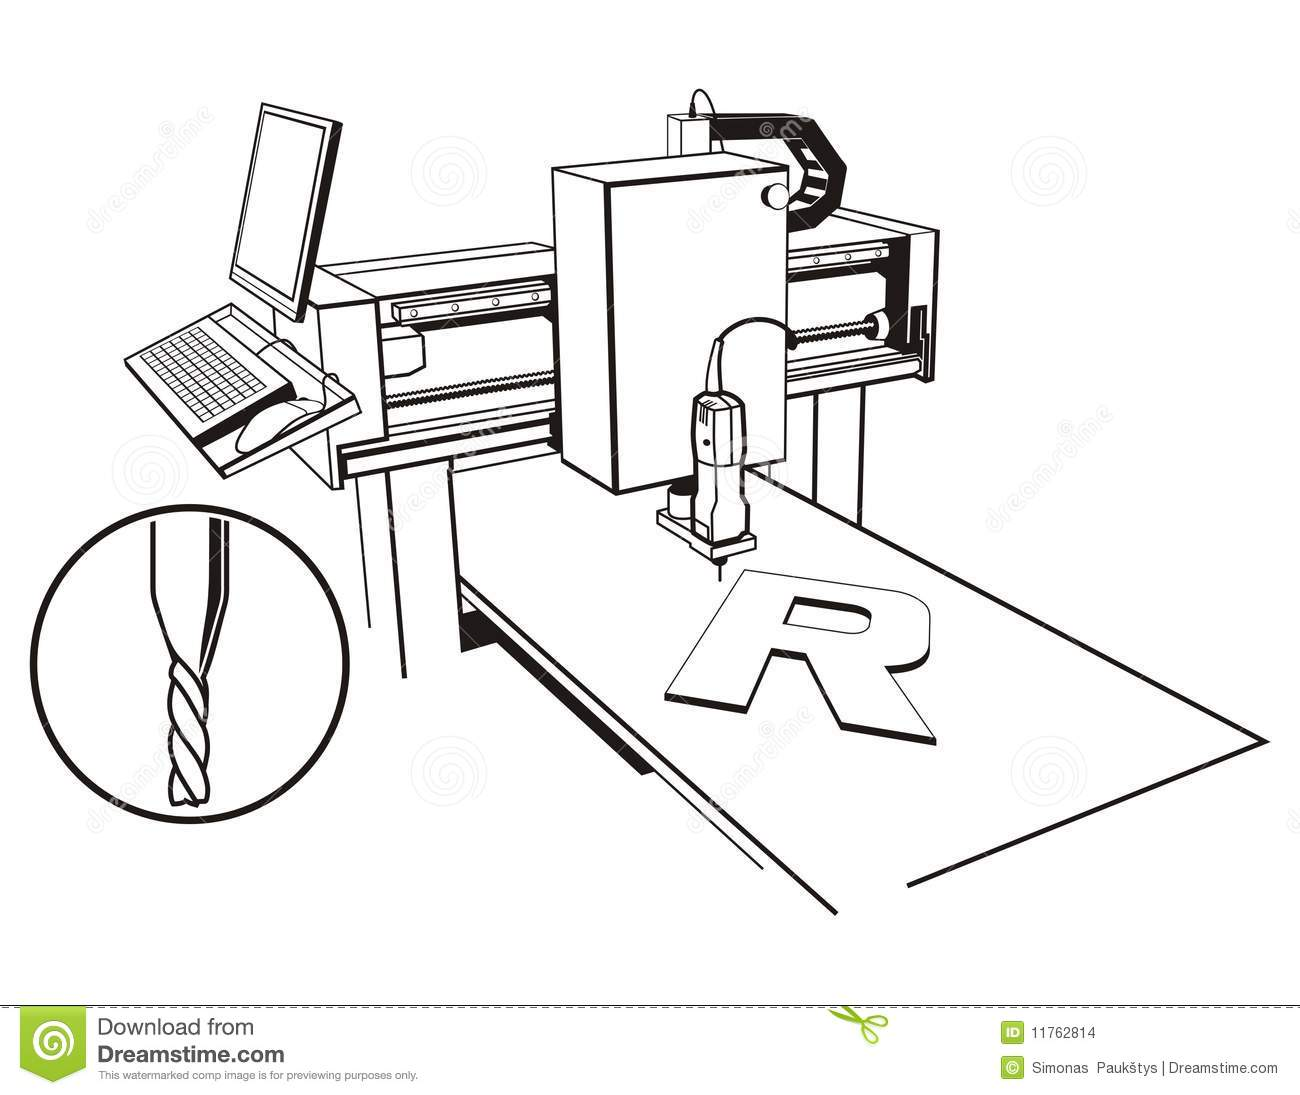 Cnc Stock Images